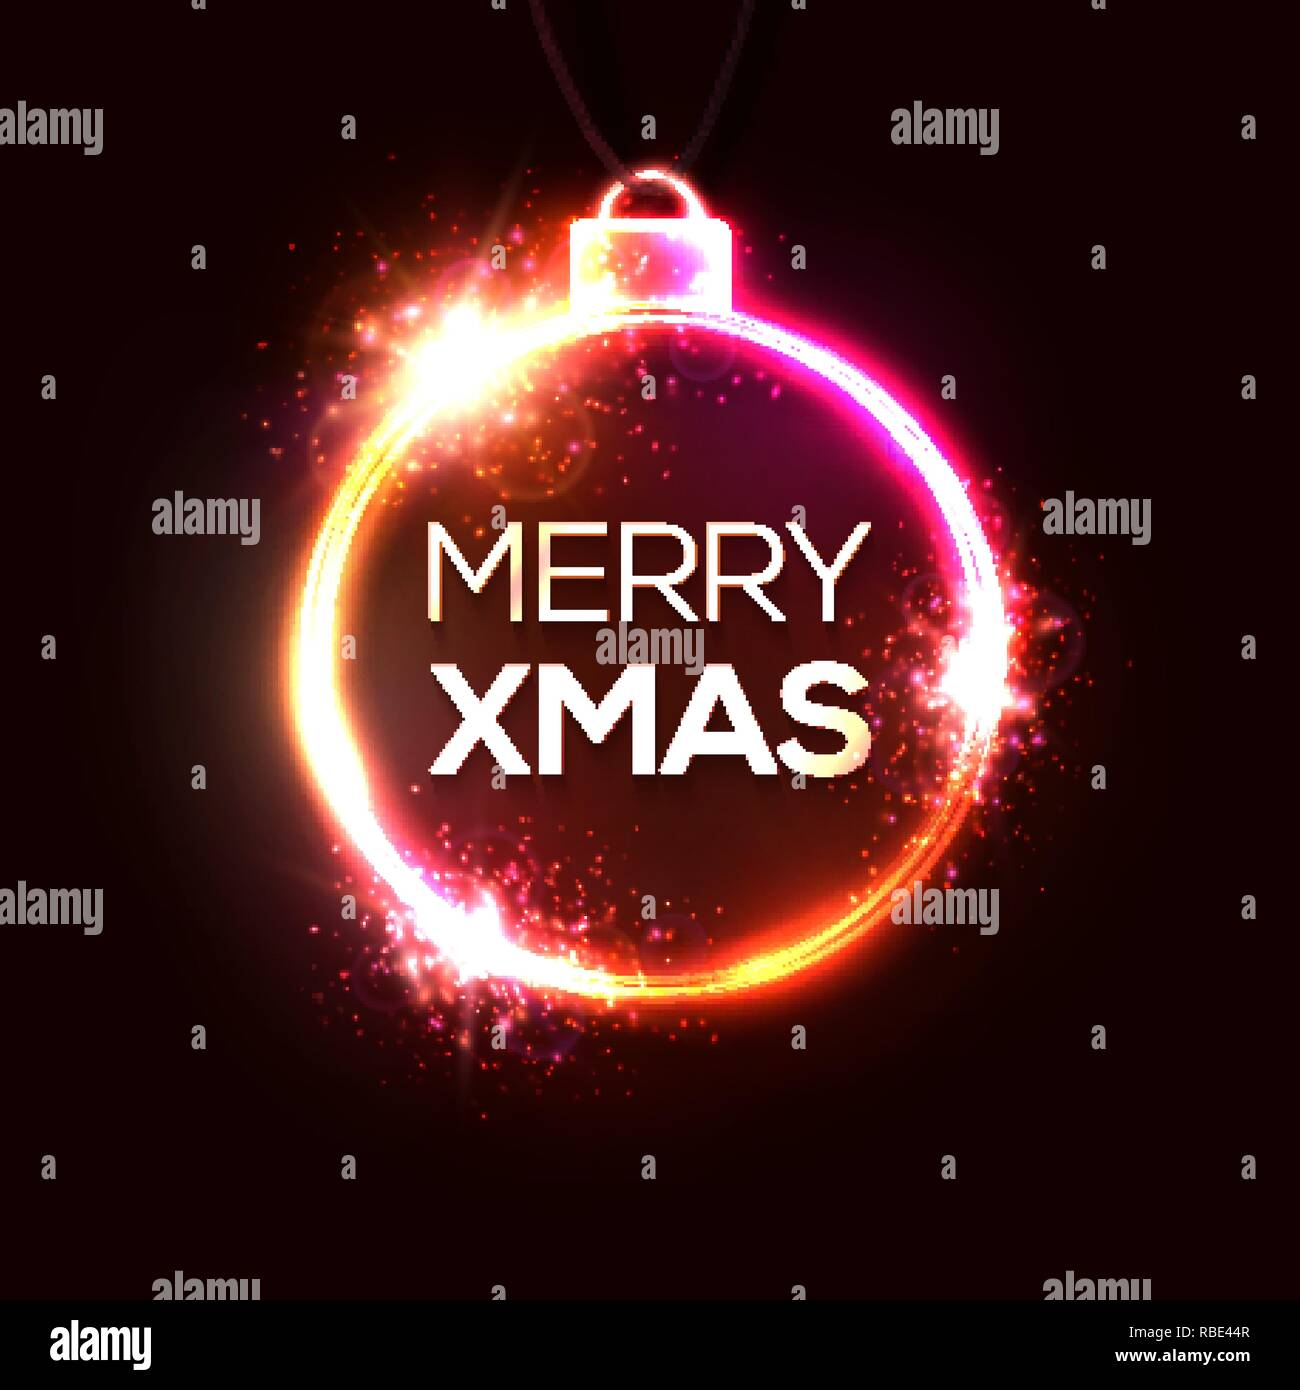 merry xmas neon sign bright signboard light banner christmas and happy new year logo neon greeting card template electric techno explosion frame celebrating background red vector illustration RBE44R